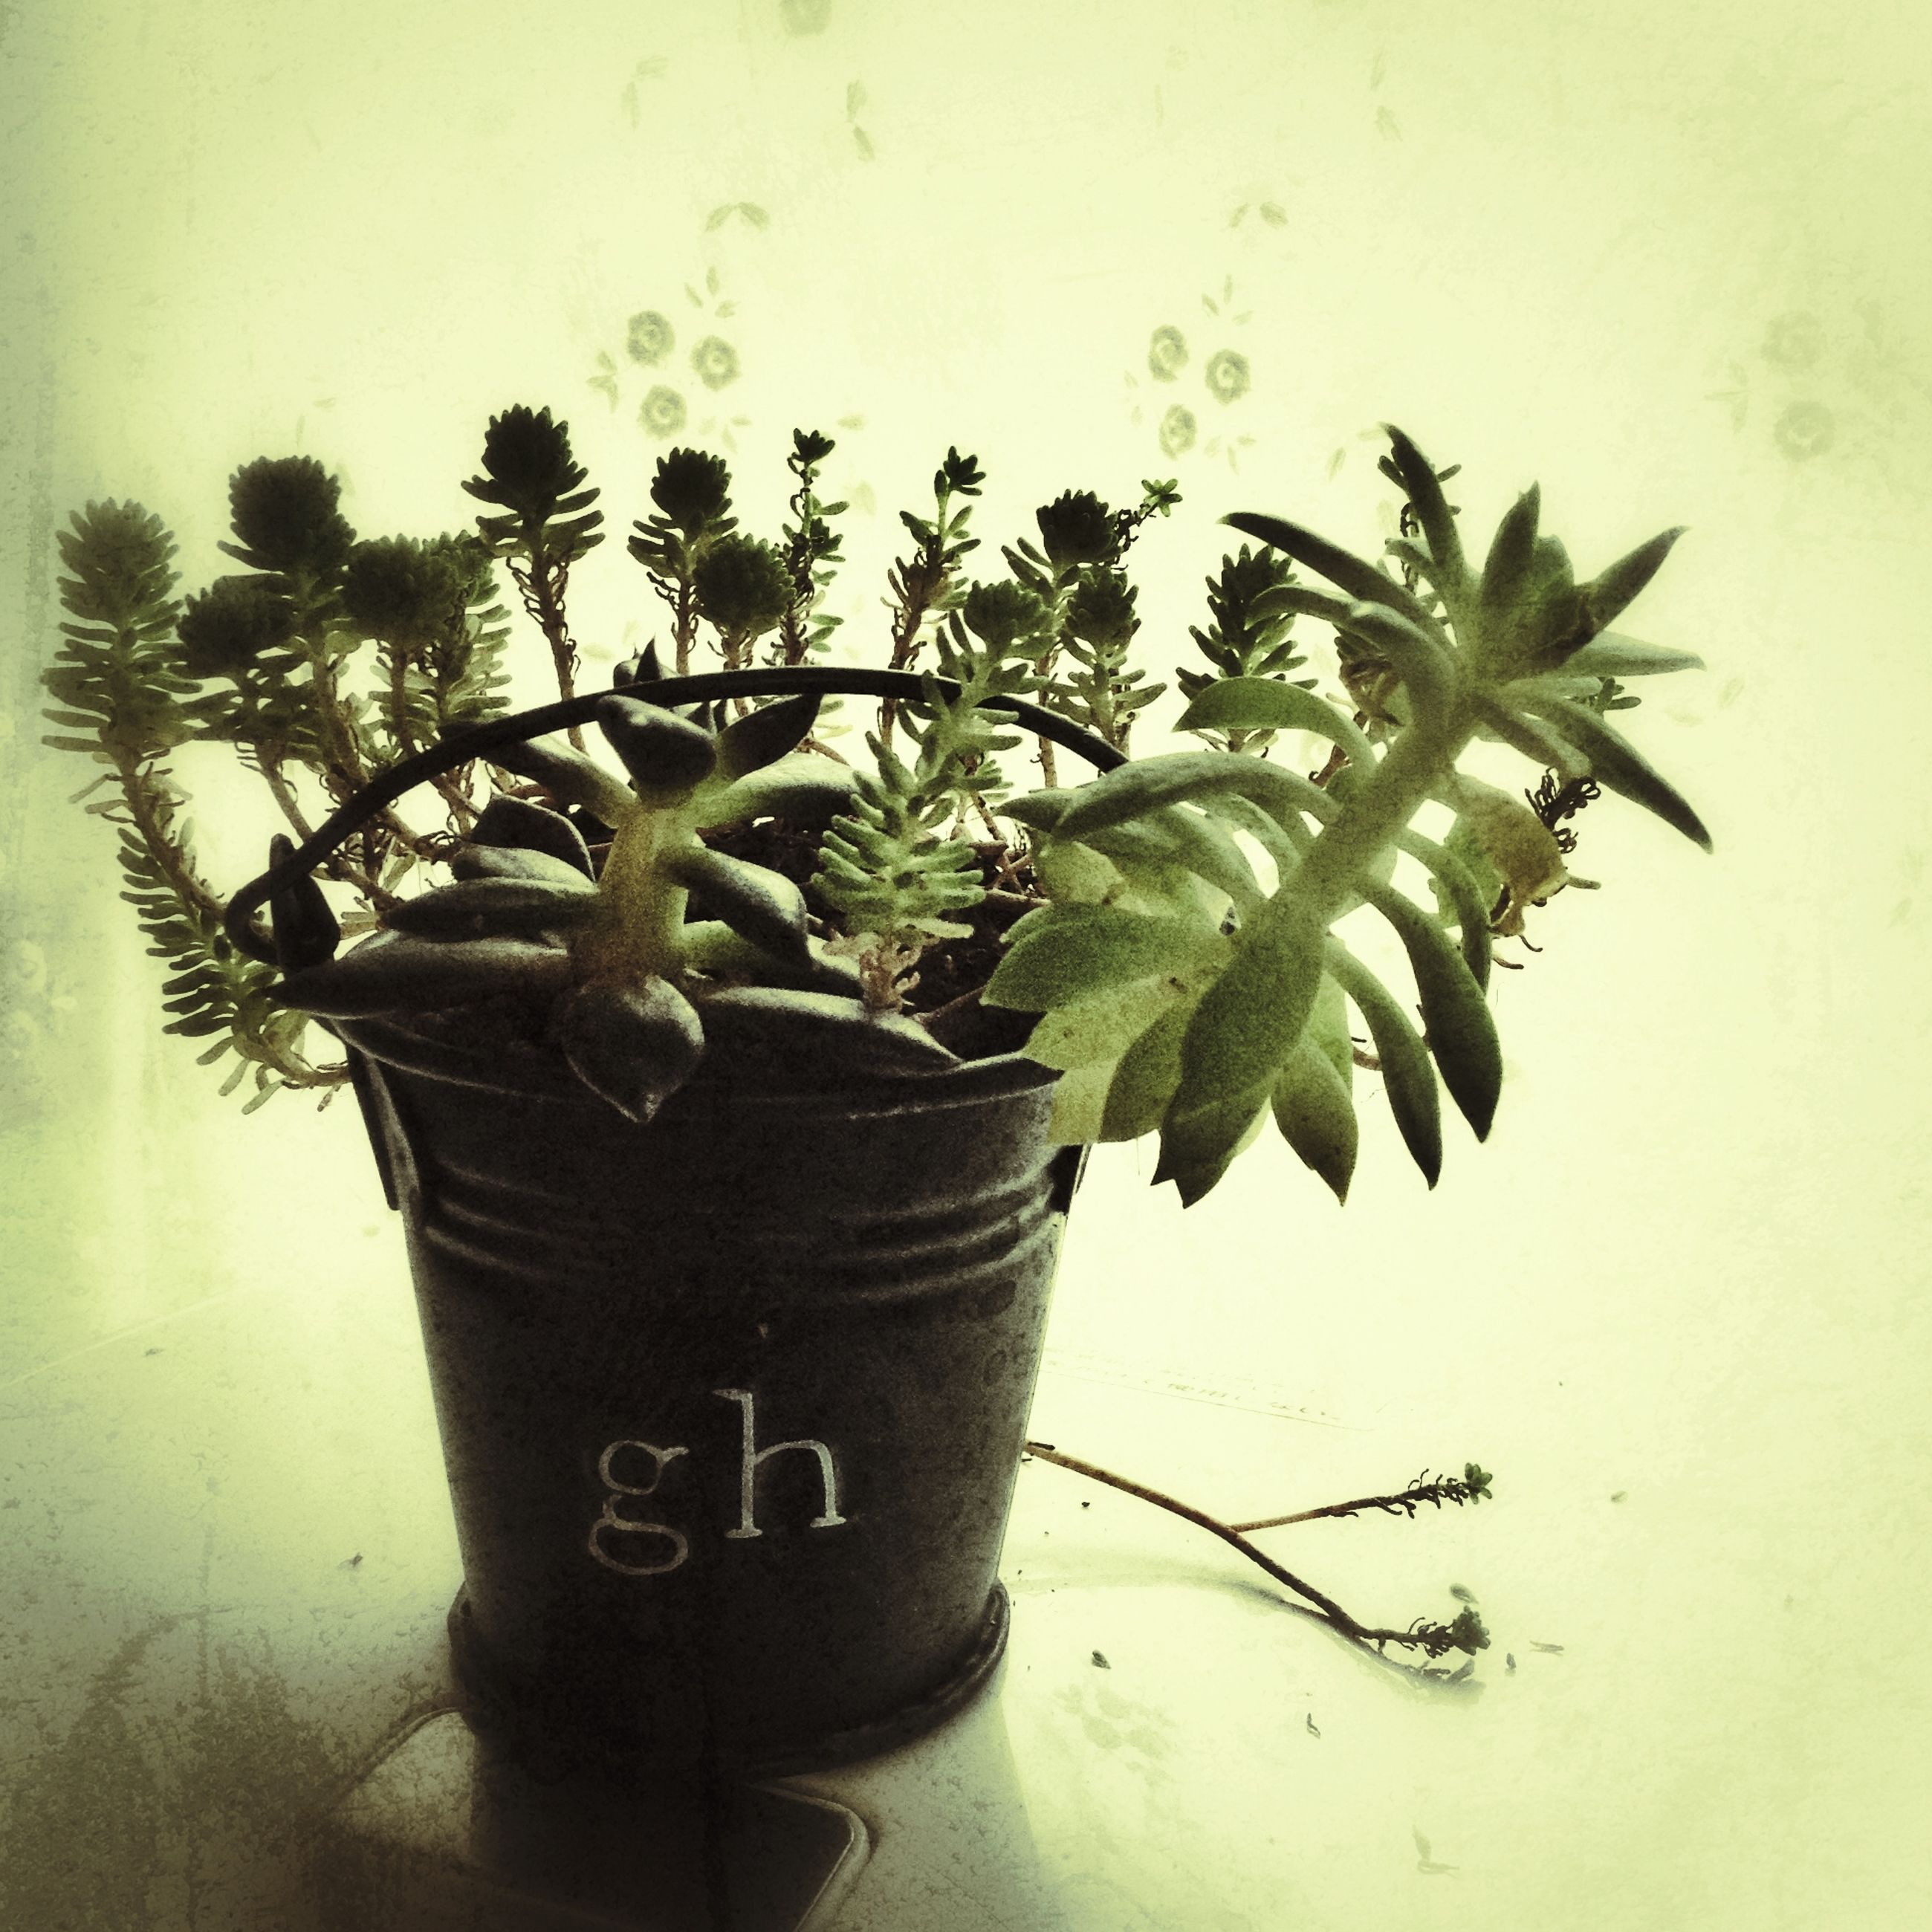 growth, plant, potted plant, leaf, wall - building feature, close-up, wall, green color, indoors, nature, no people, stem, day, green, growing, cactus, vase, built structure, flower pot